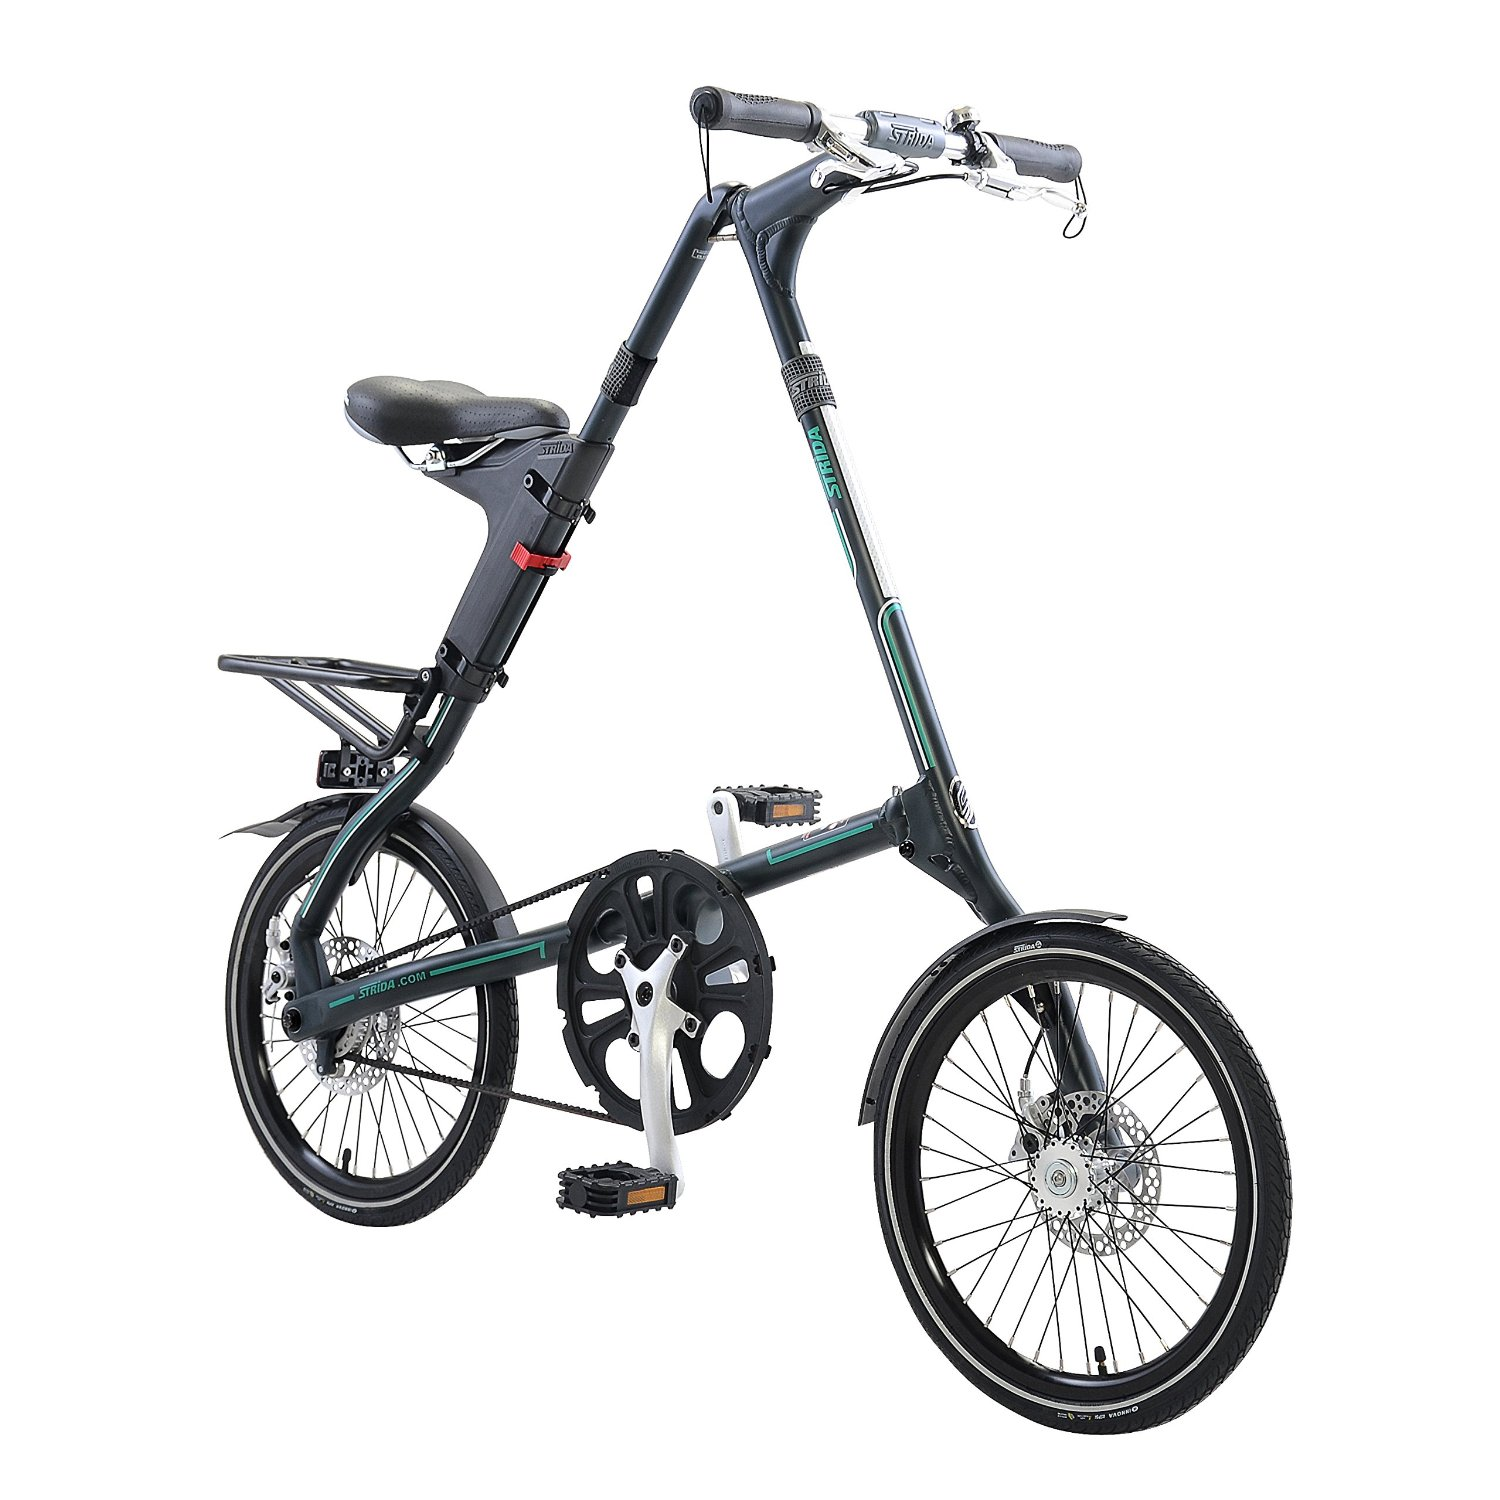 STRiDA SX Bicycle